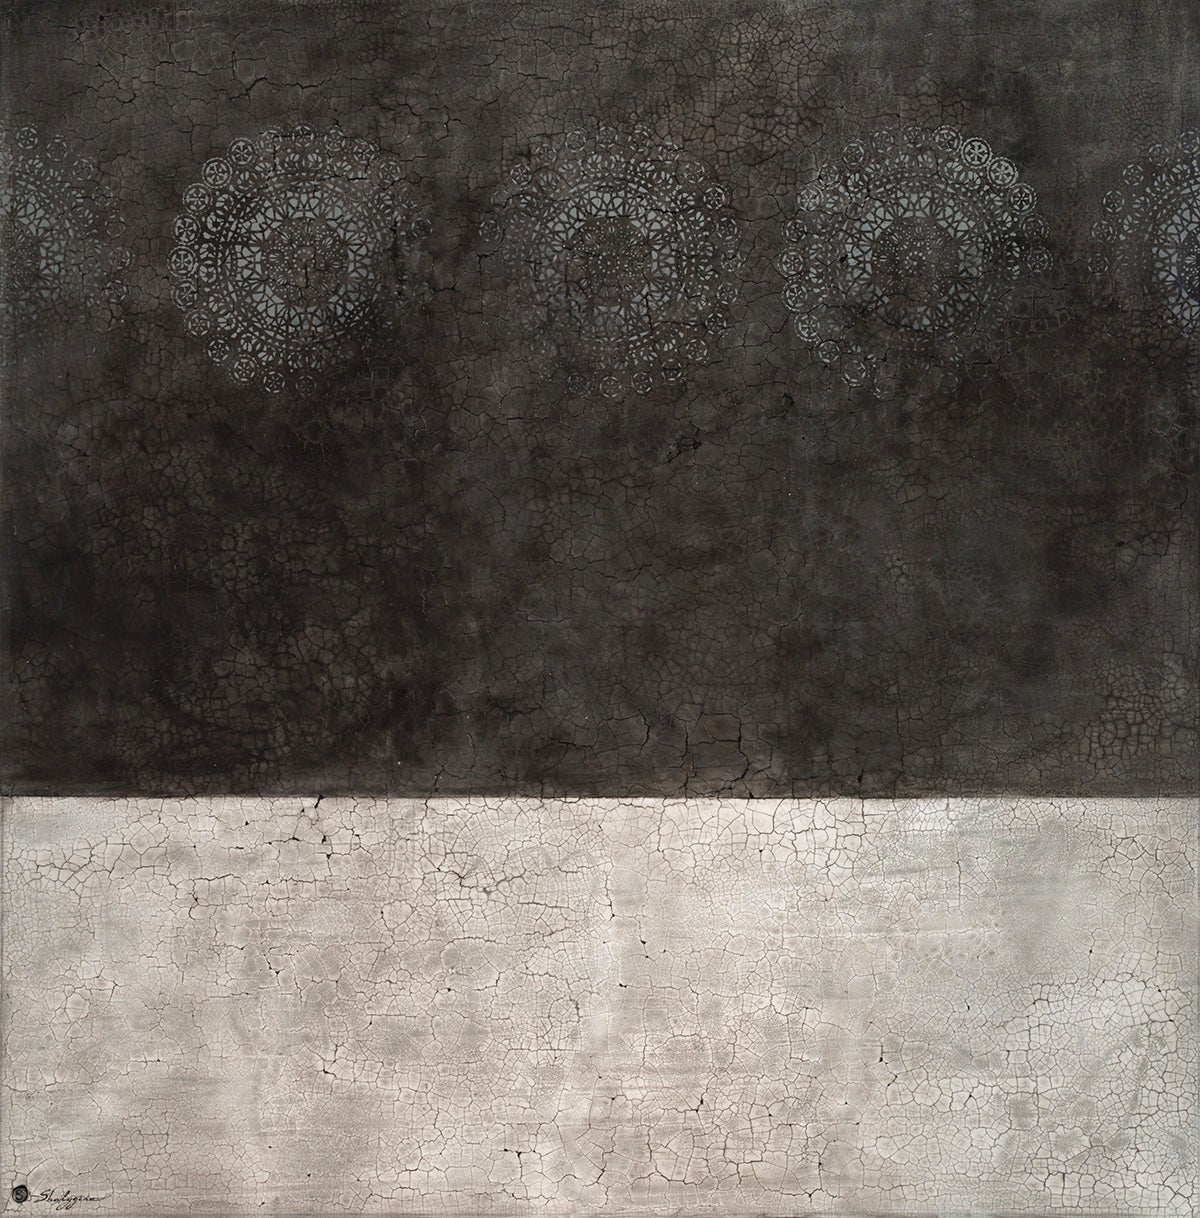 Minimalist Black White Extra Large Painting Modern Contemporary Abstract 72x72